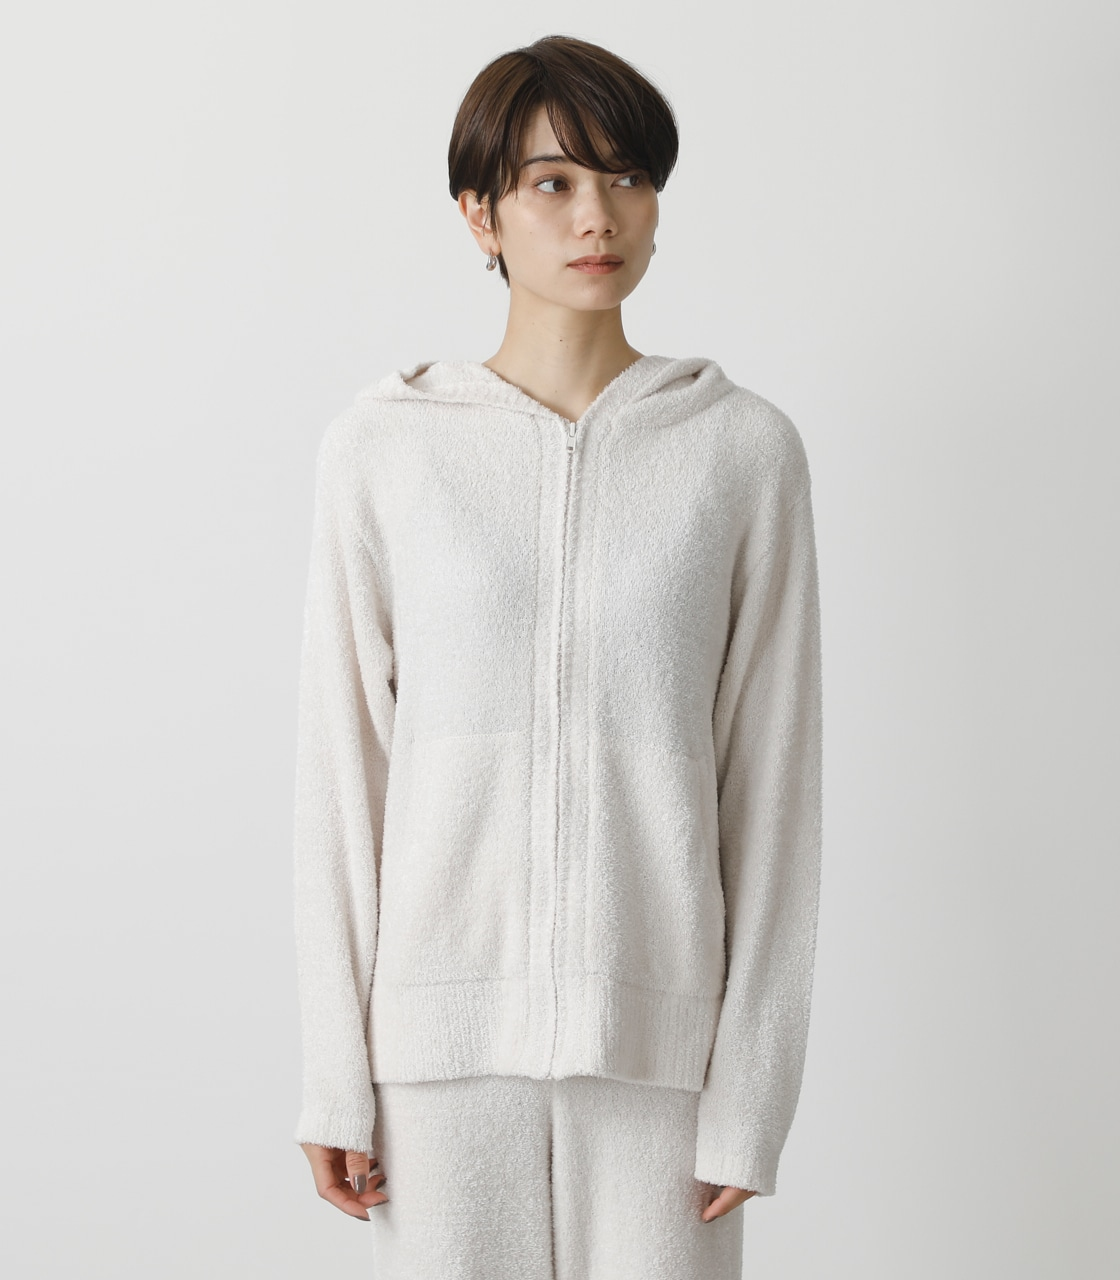 T/H FLUFFY HOODIE/T/Hフラッフィーフーディ 詳細画像 IVOY 5